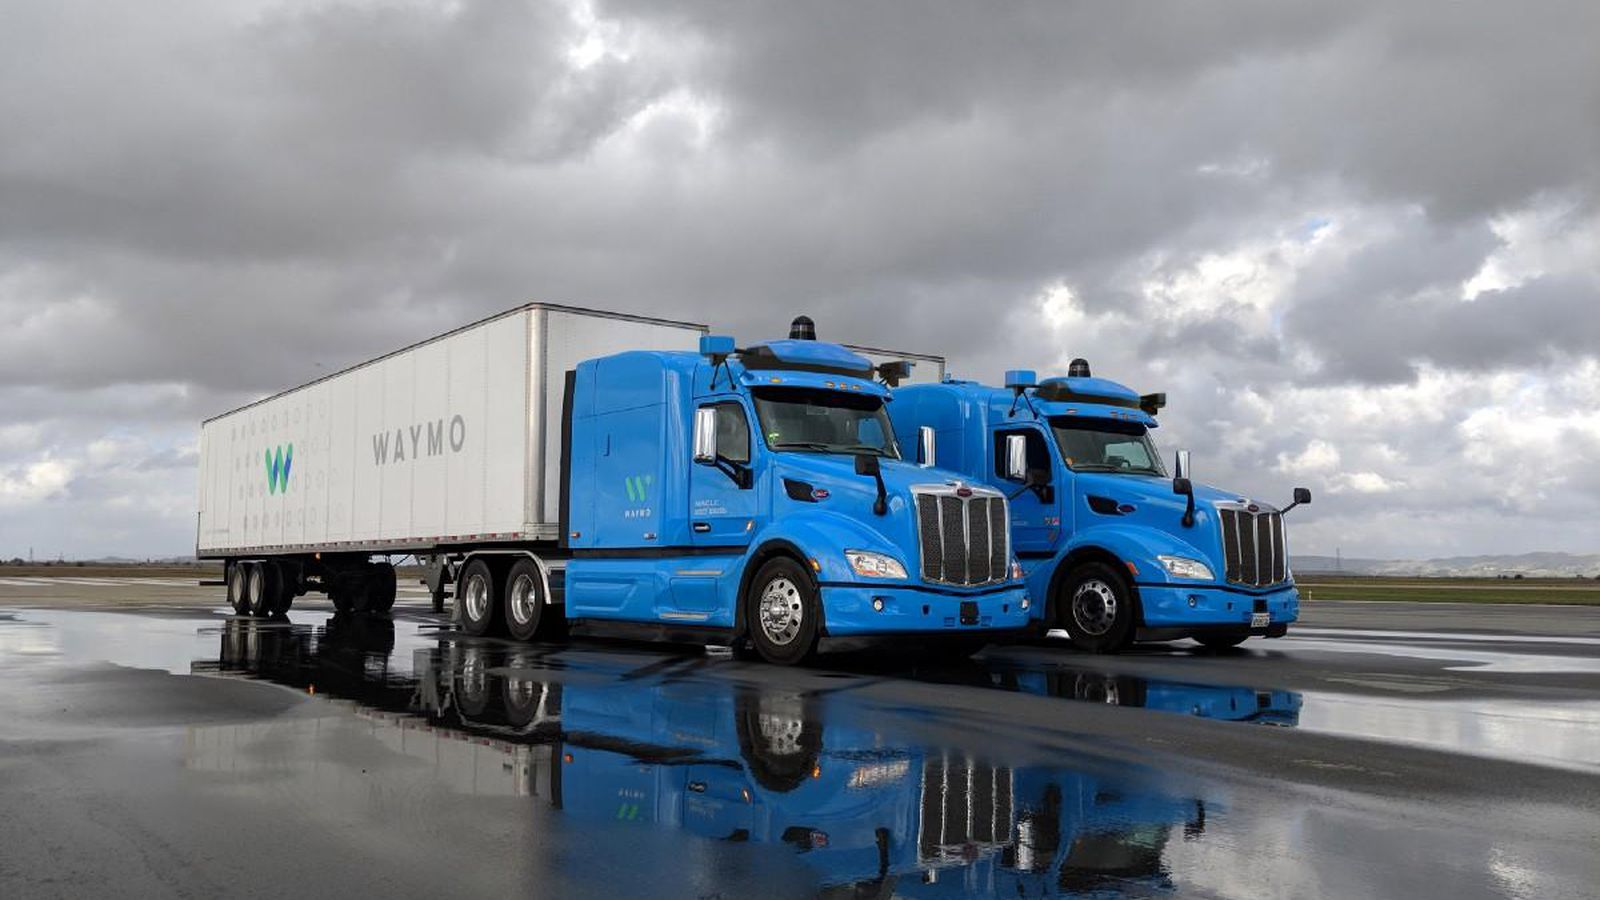 waymo-self-driving-tractor-trailer-3